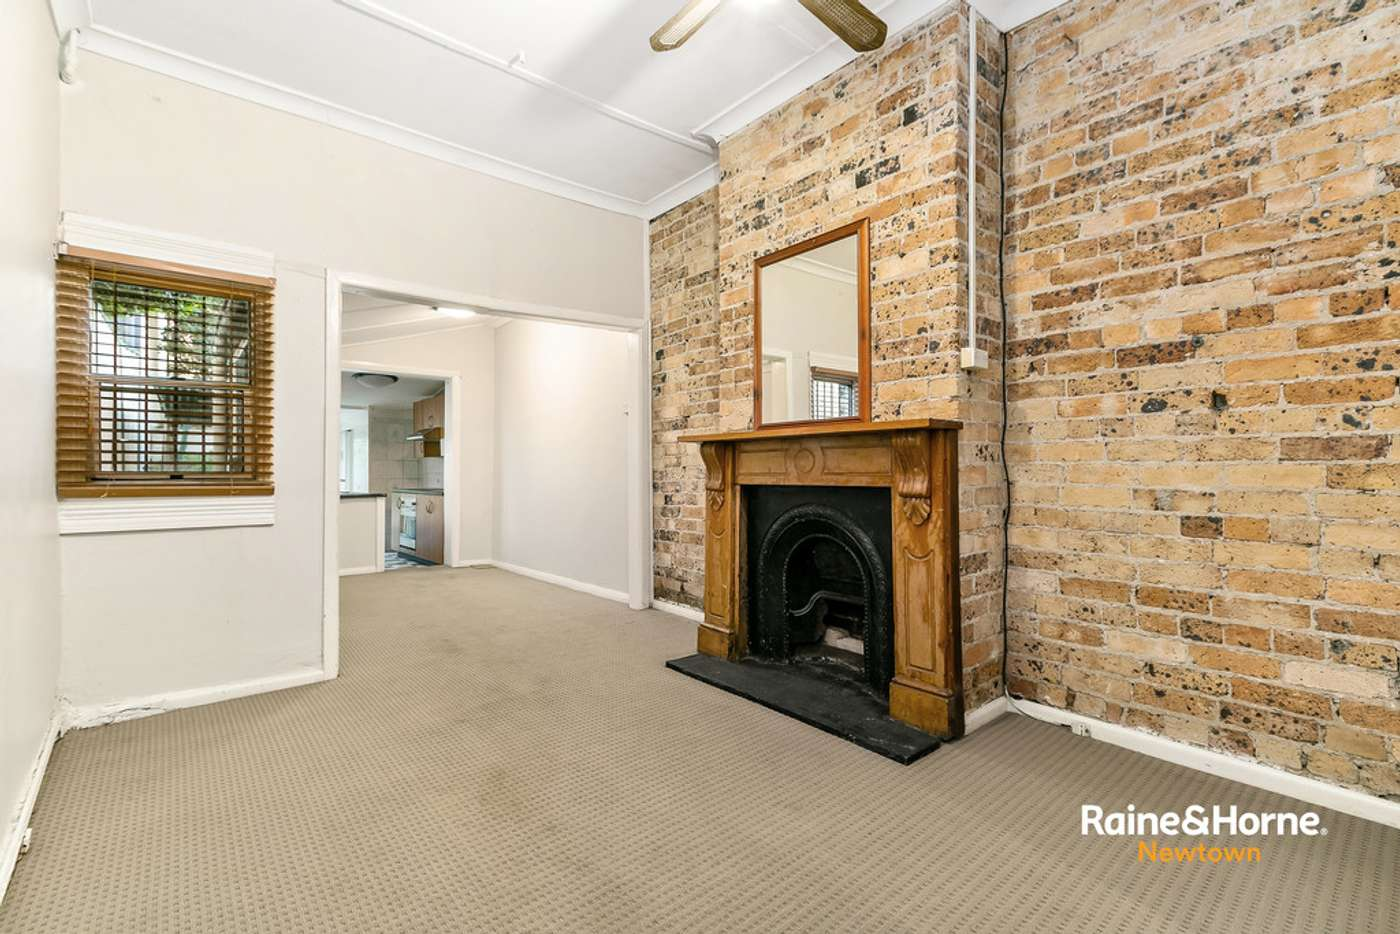 Main view of Homely house listing, 64 Queen Street, Newtown NSW 2042